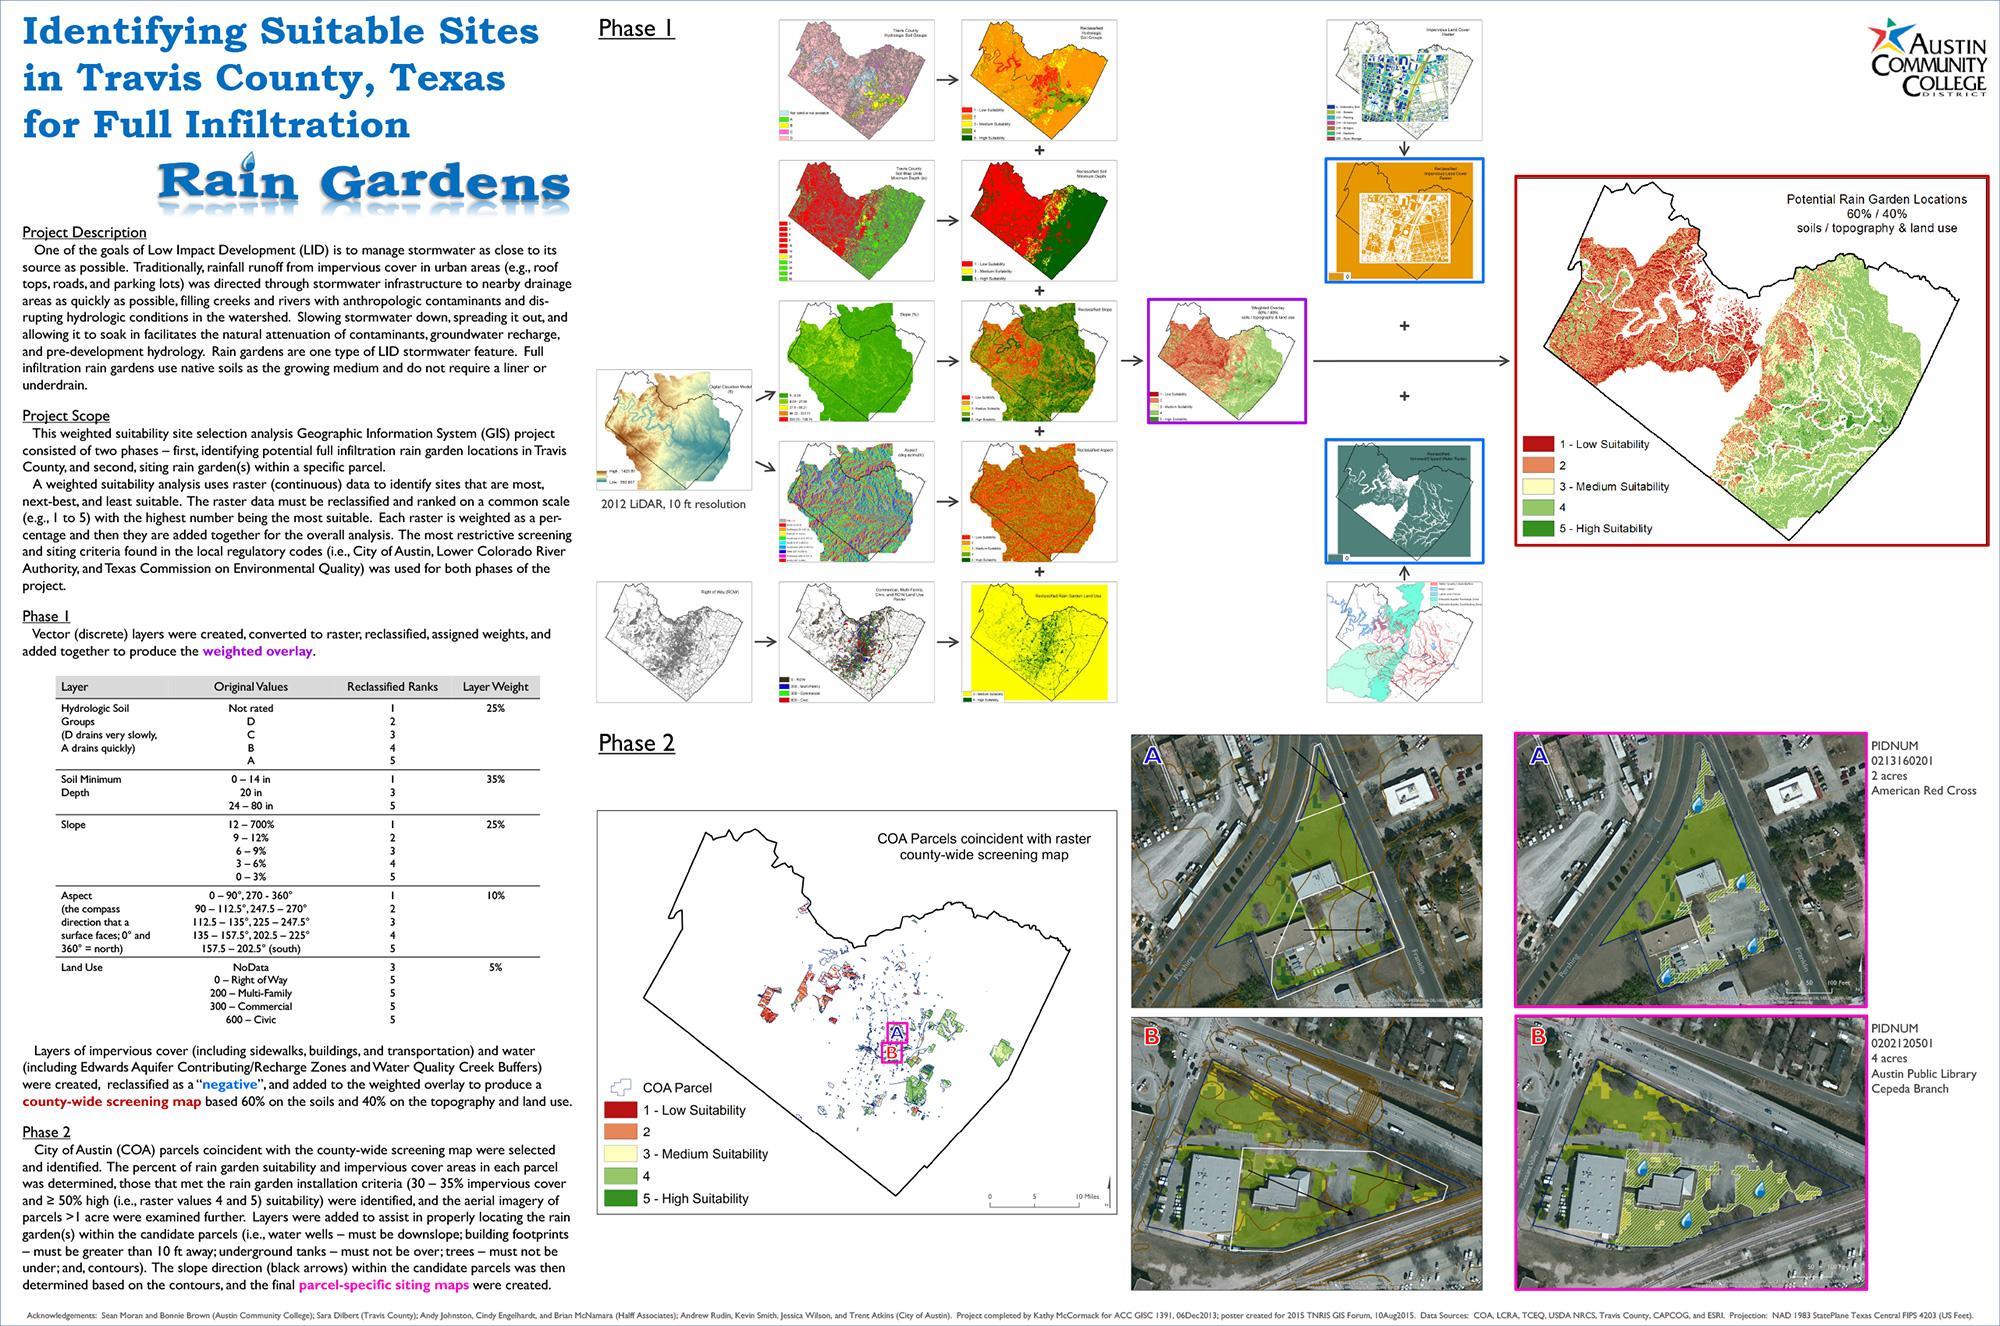 A large preview of the Identifying Potential Rain Garden Sites image